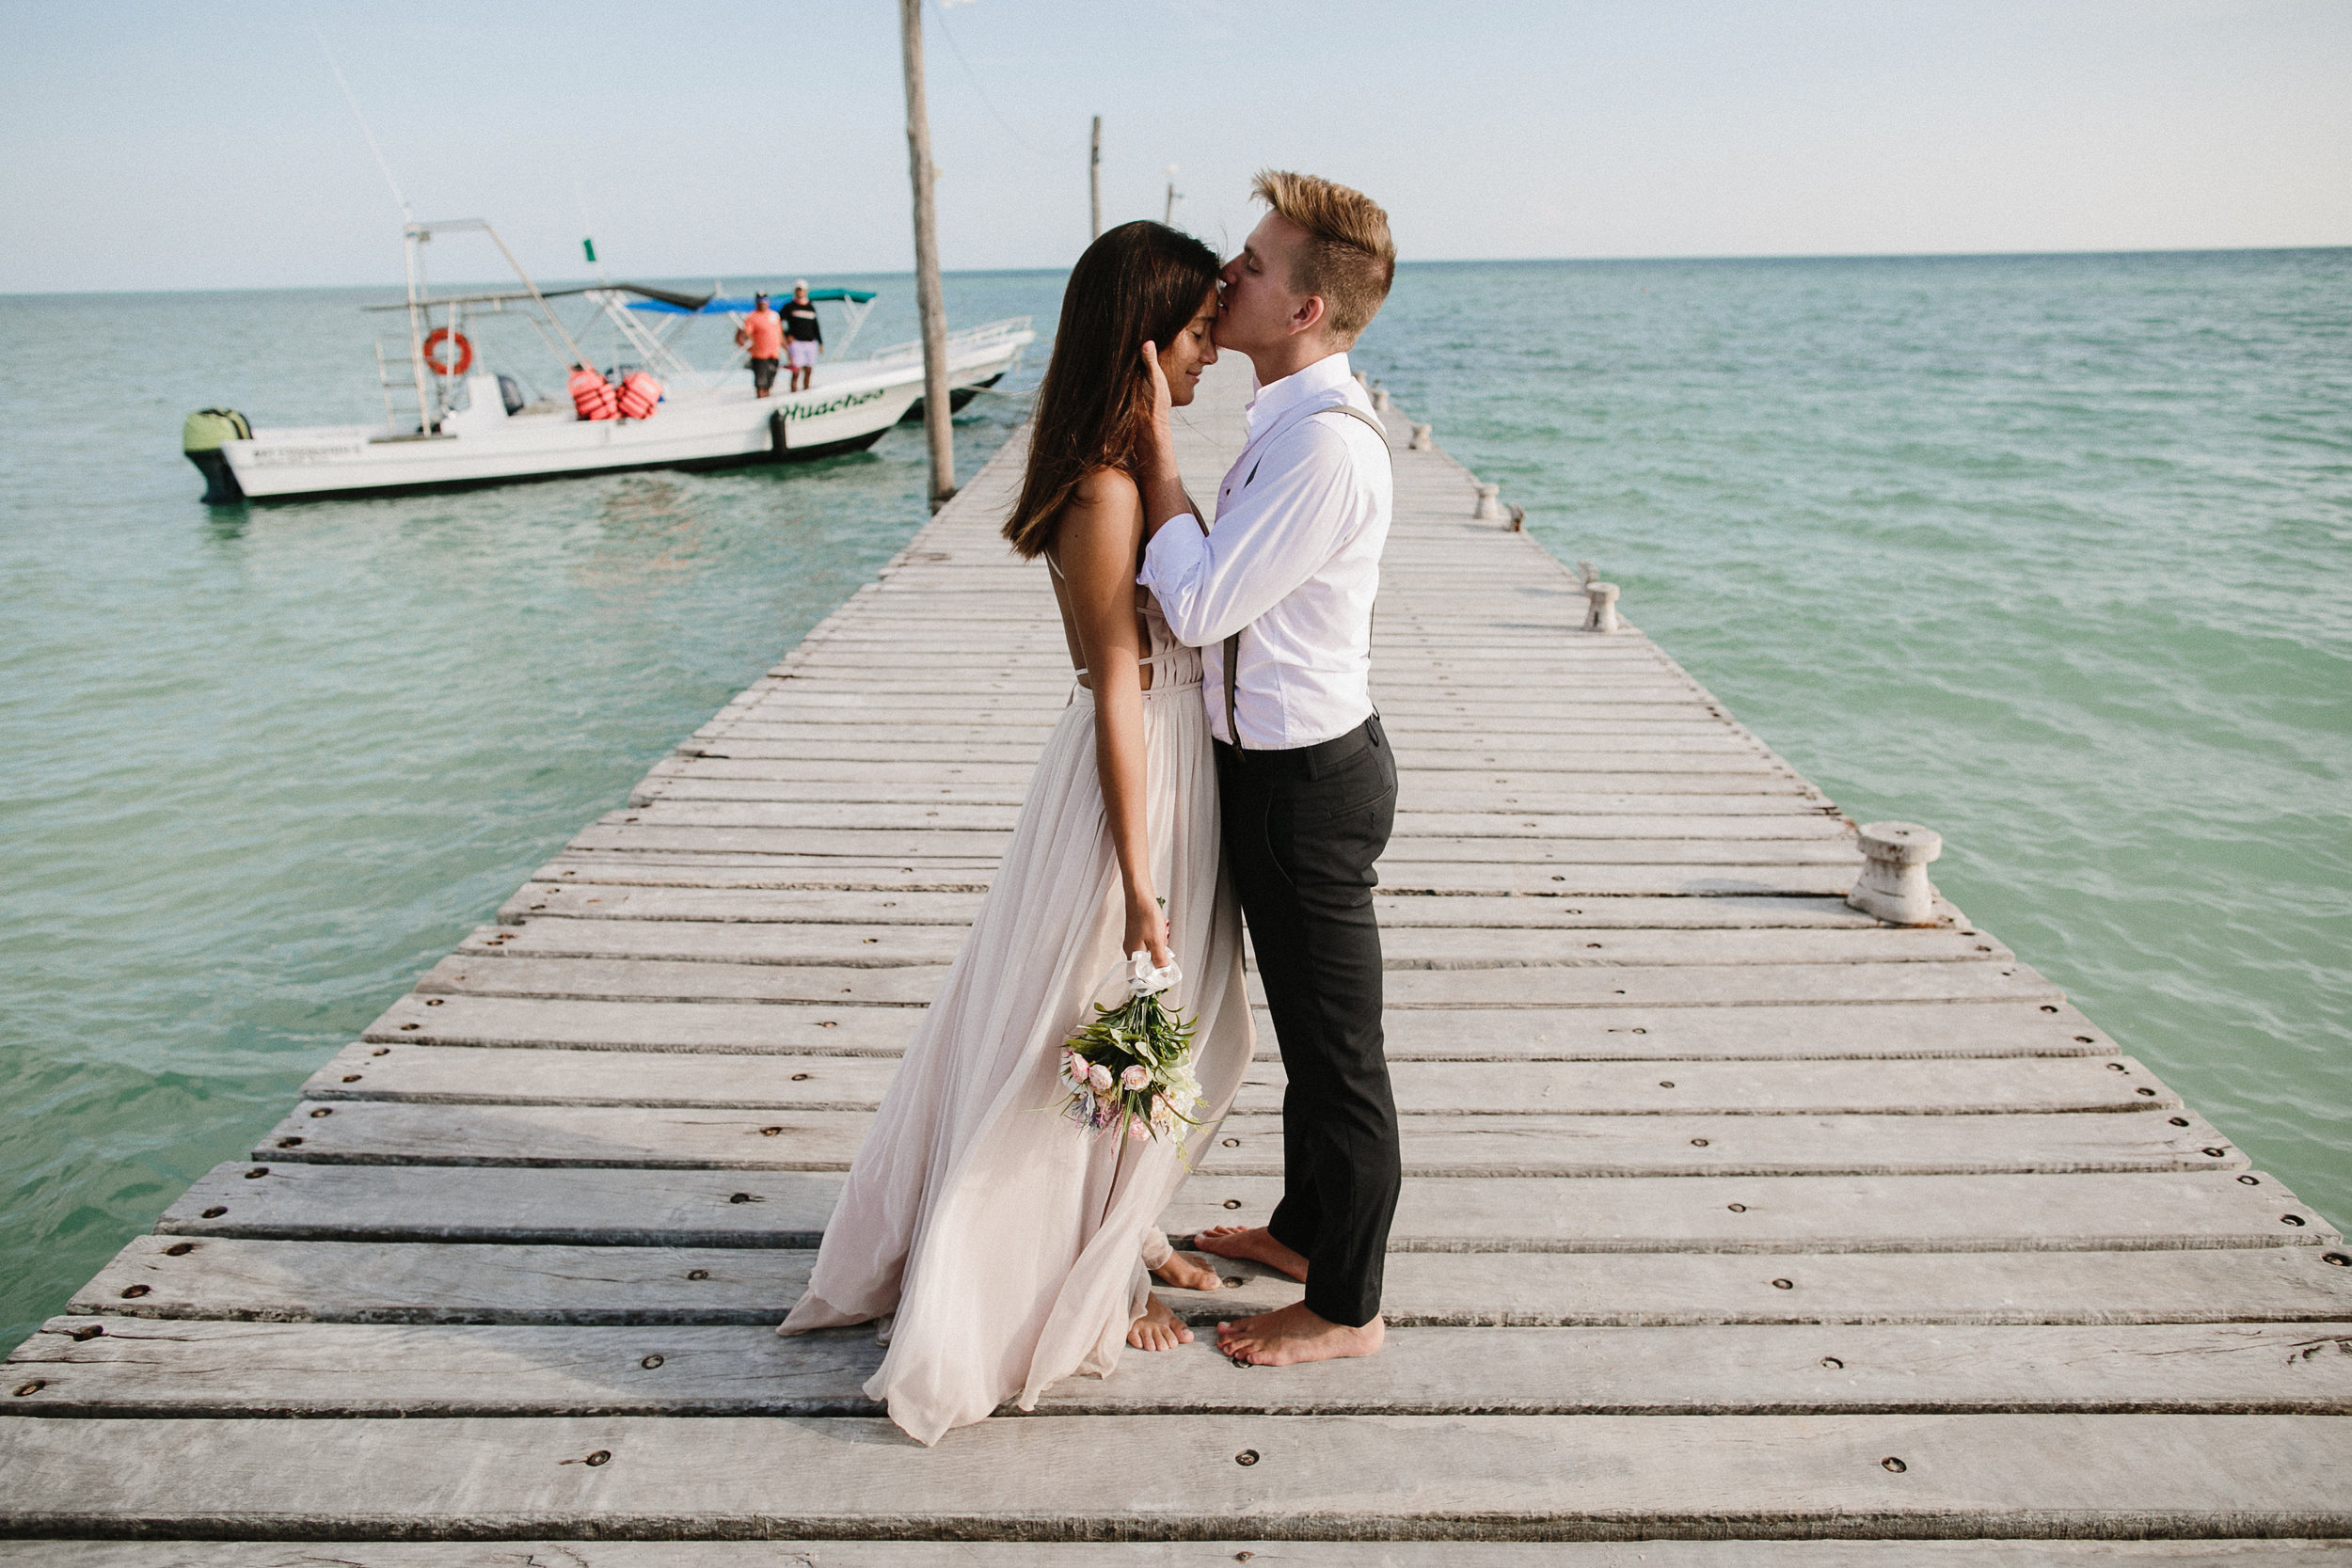 alfonso_flores_destination_wedding_photographer_holbox_nomada_workshop-266.jpg